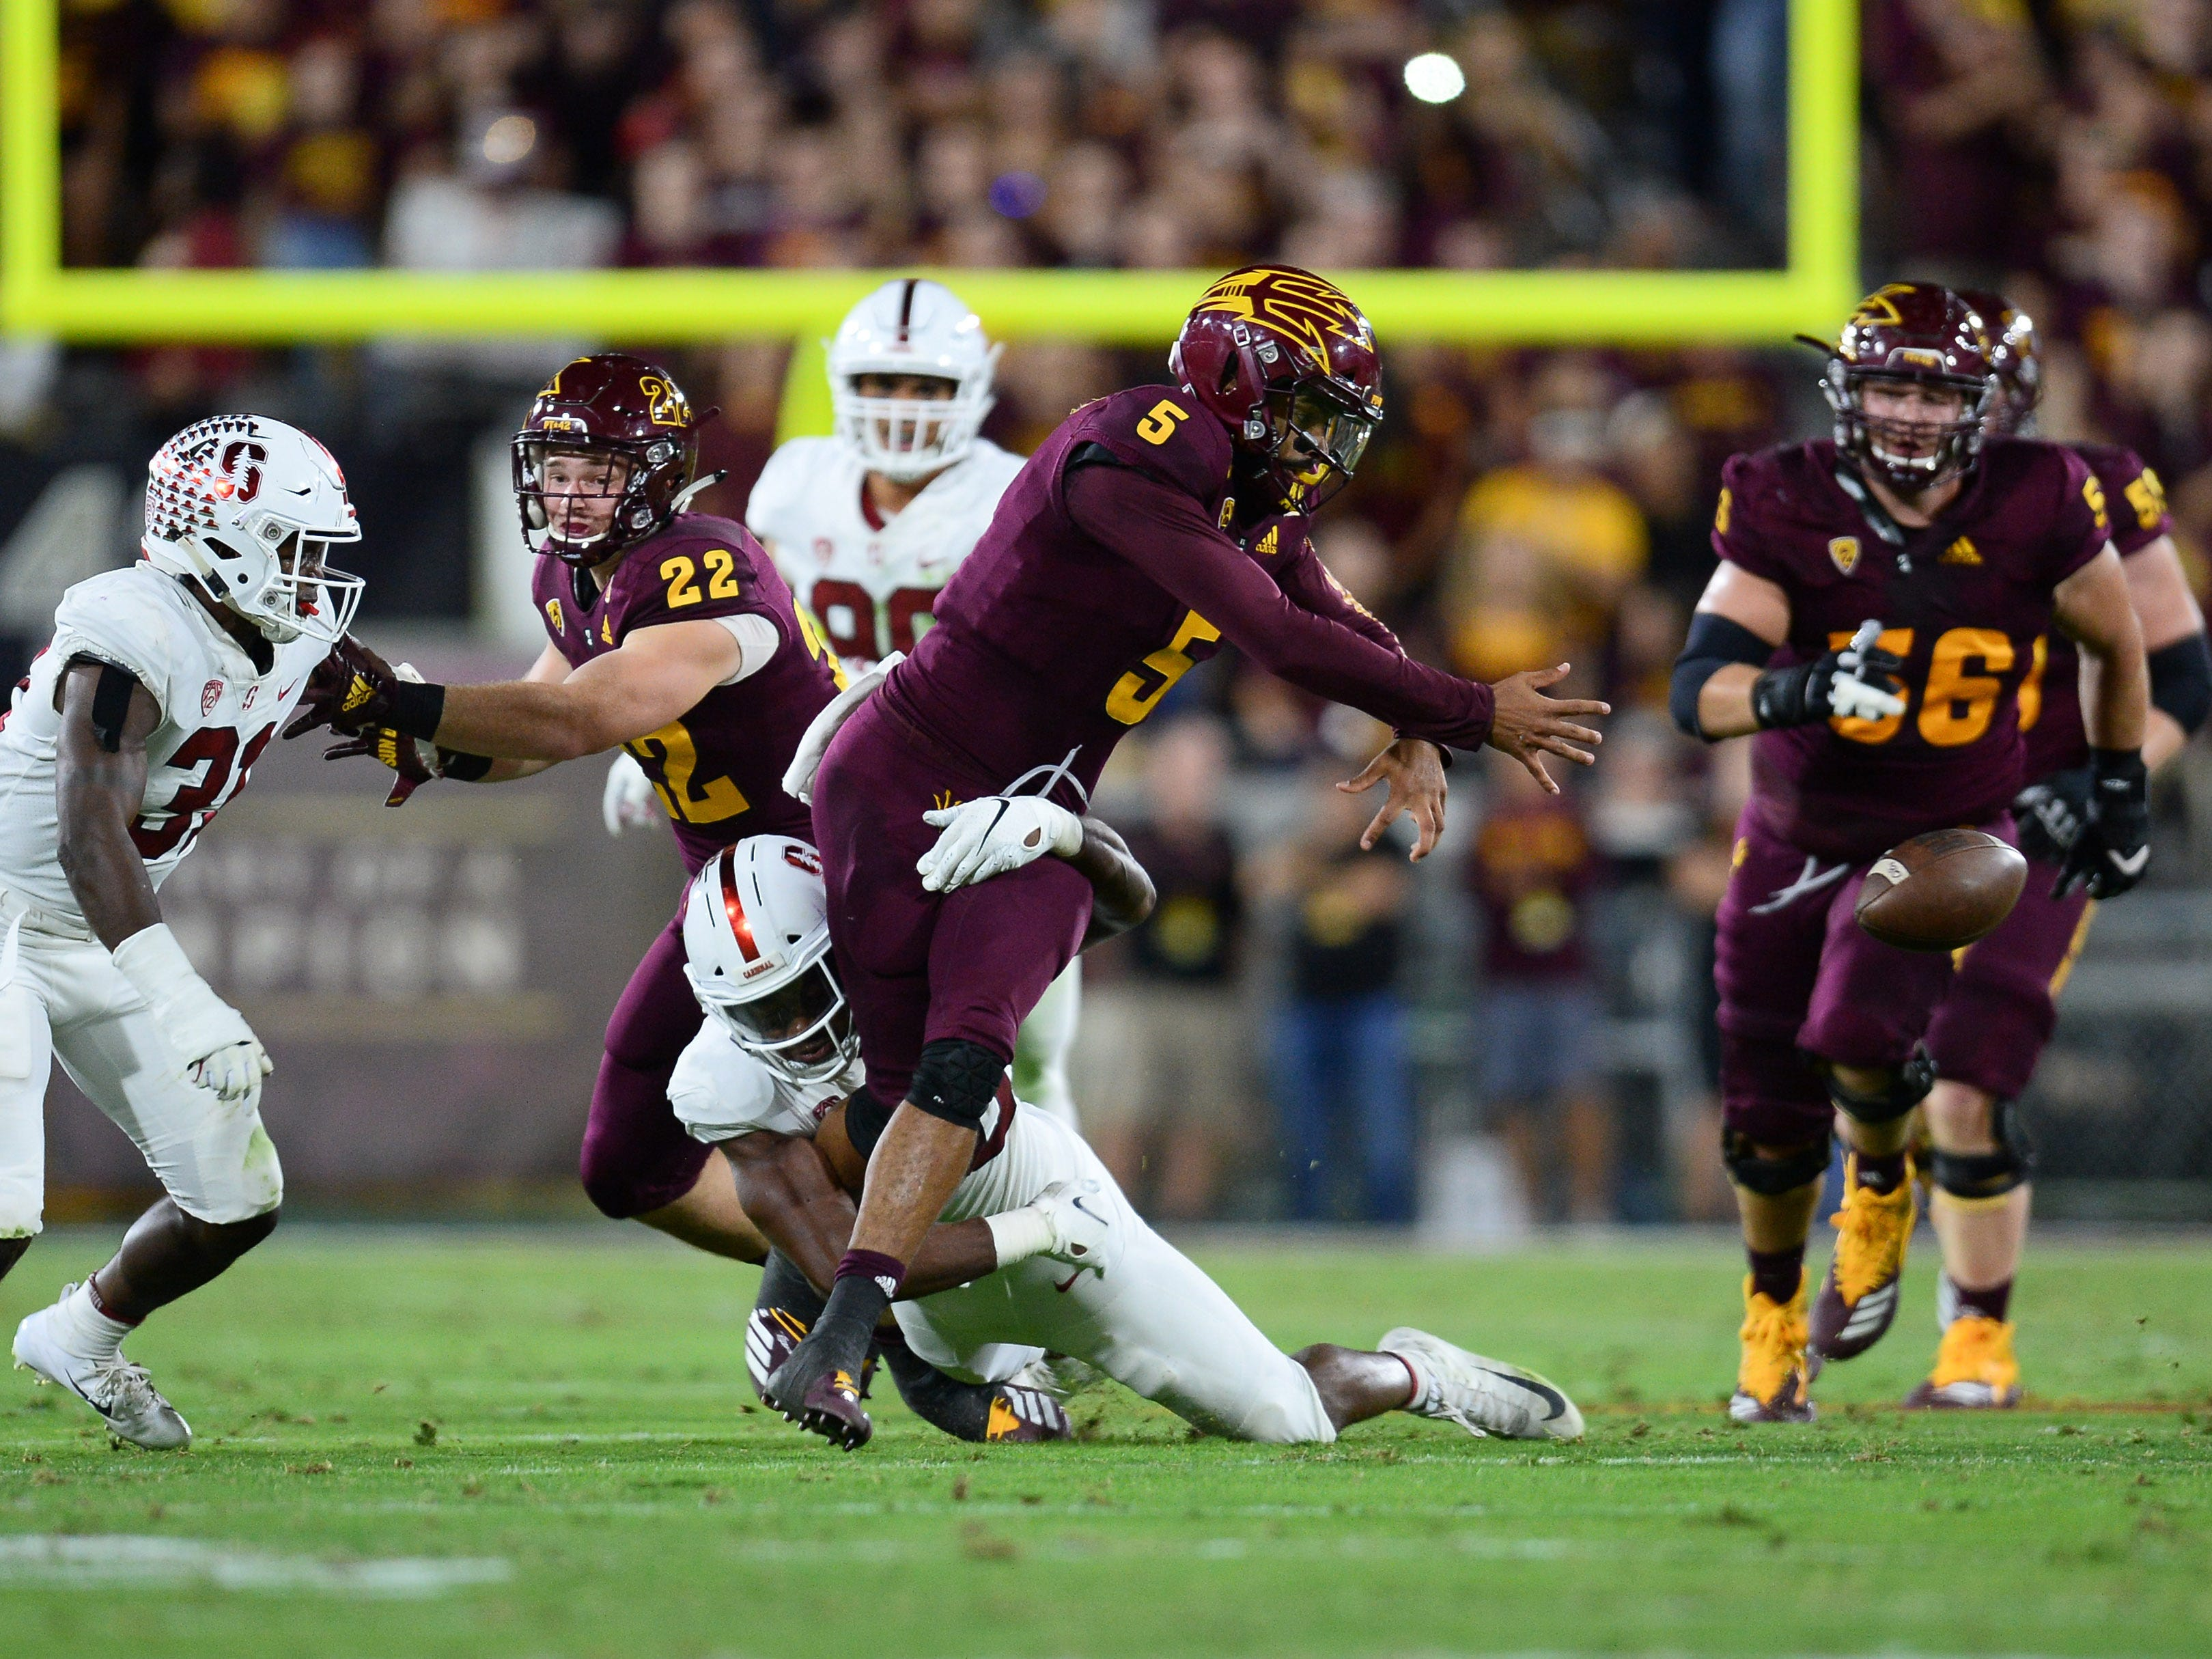 Oct 18, 2018; Tempe, AZ, USA; Arizona State Sun Devils quarterback Manny Wilkins (5) fumbles after being hit by Stanford Cardinal linebacker Bobby Okereke (20) during the first half at Sun Devil Stadium.